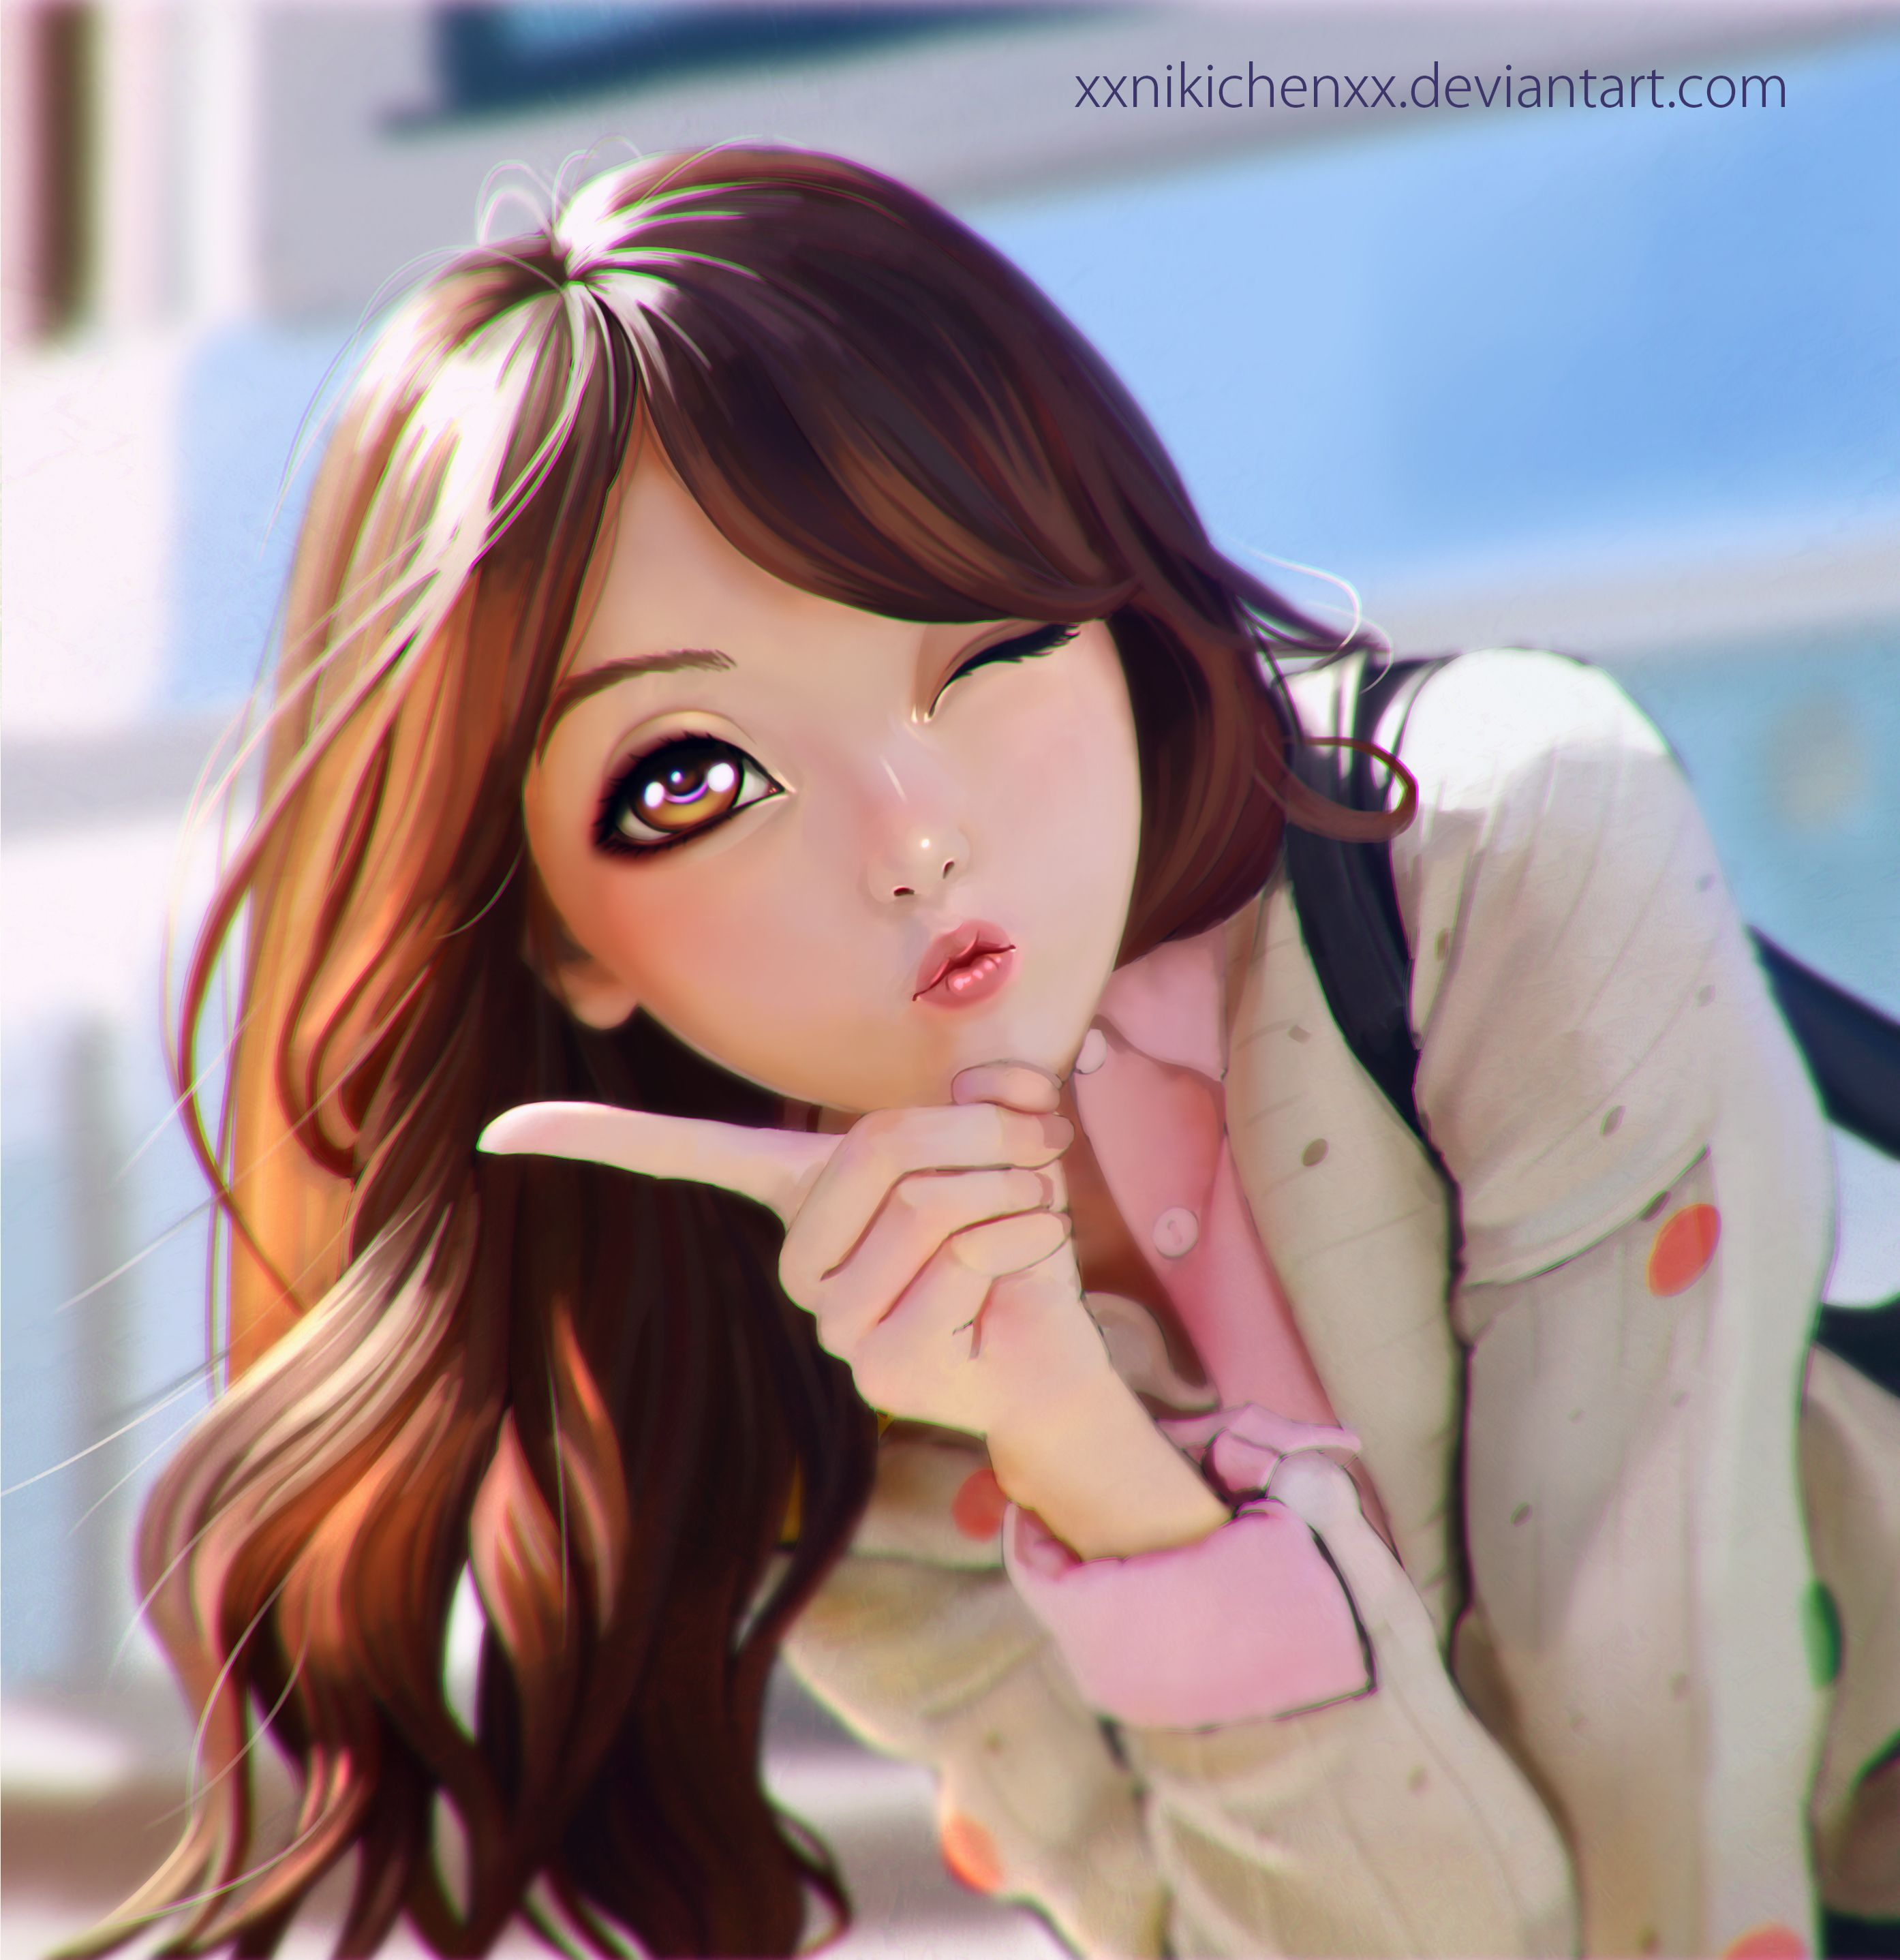 Anime Picture Search Engine 1girl Absurdres Brown Hair Face Highres Lips Long Hair Looking At Viewer One Eye Close Anime Art Girl Girly Art Digital Art Girl